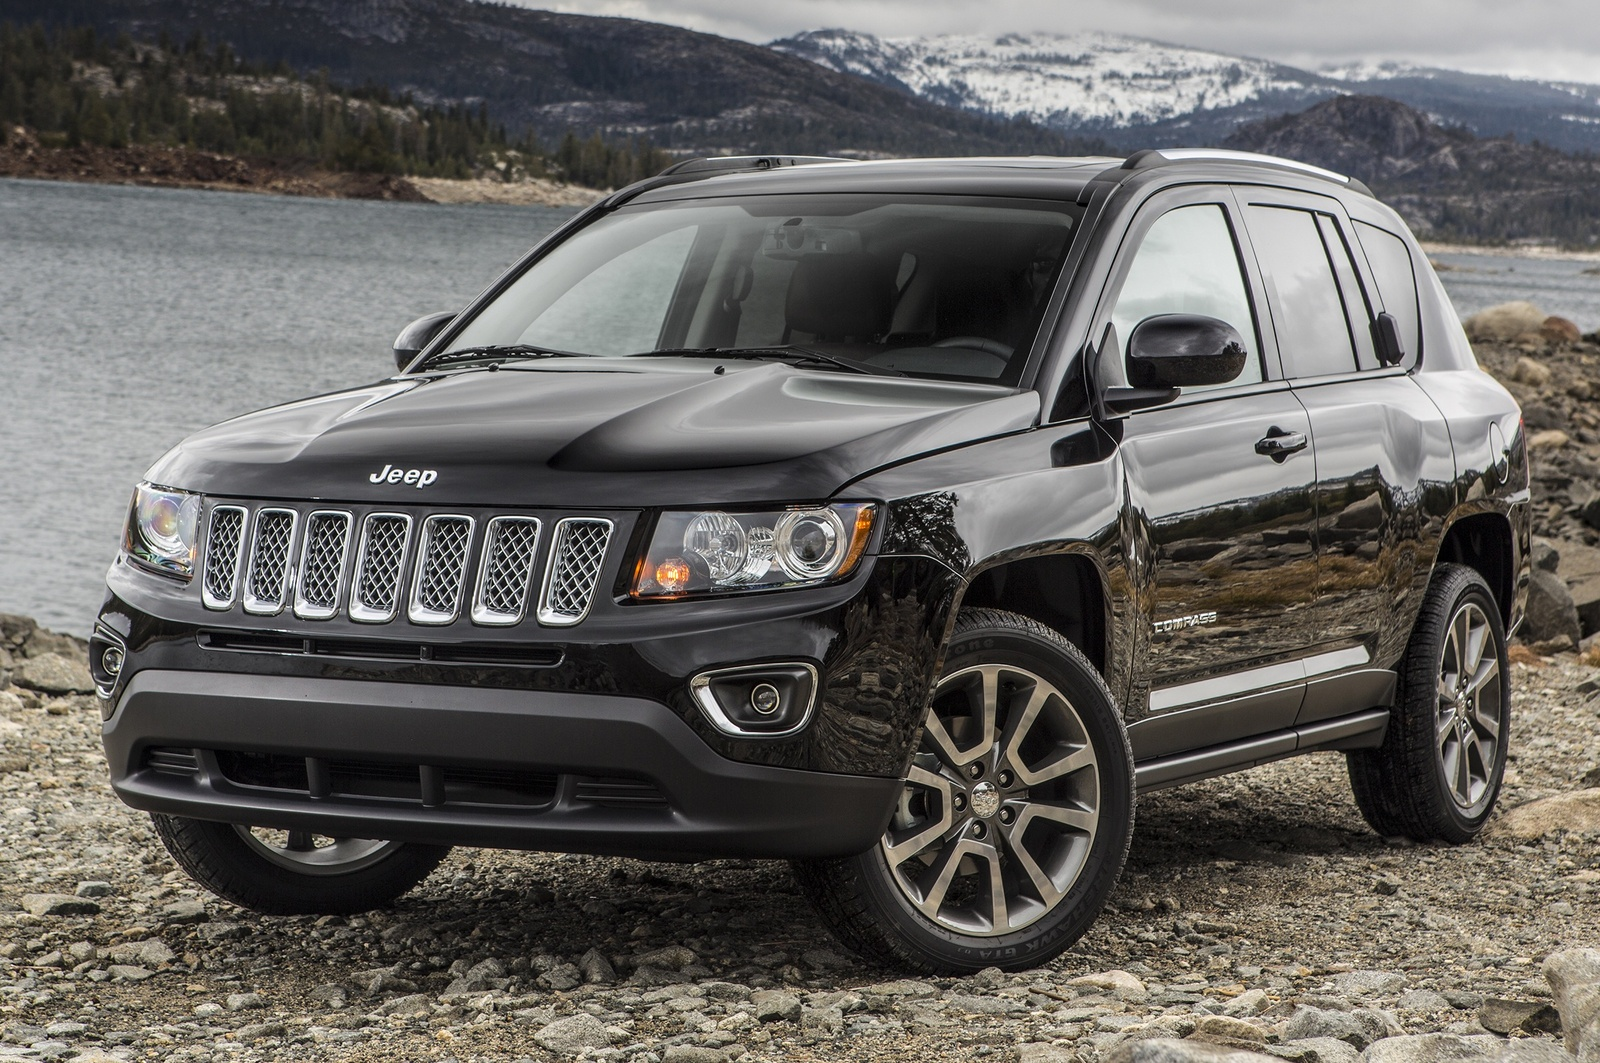 2015 Jeep Compass - Review - CarGurus